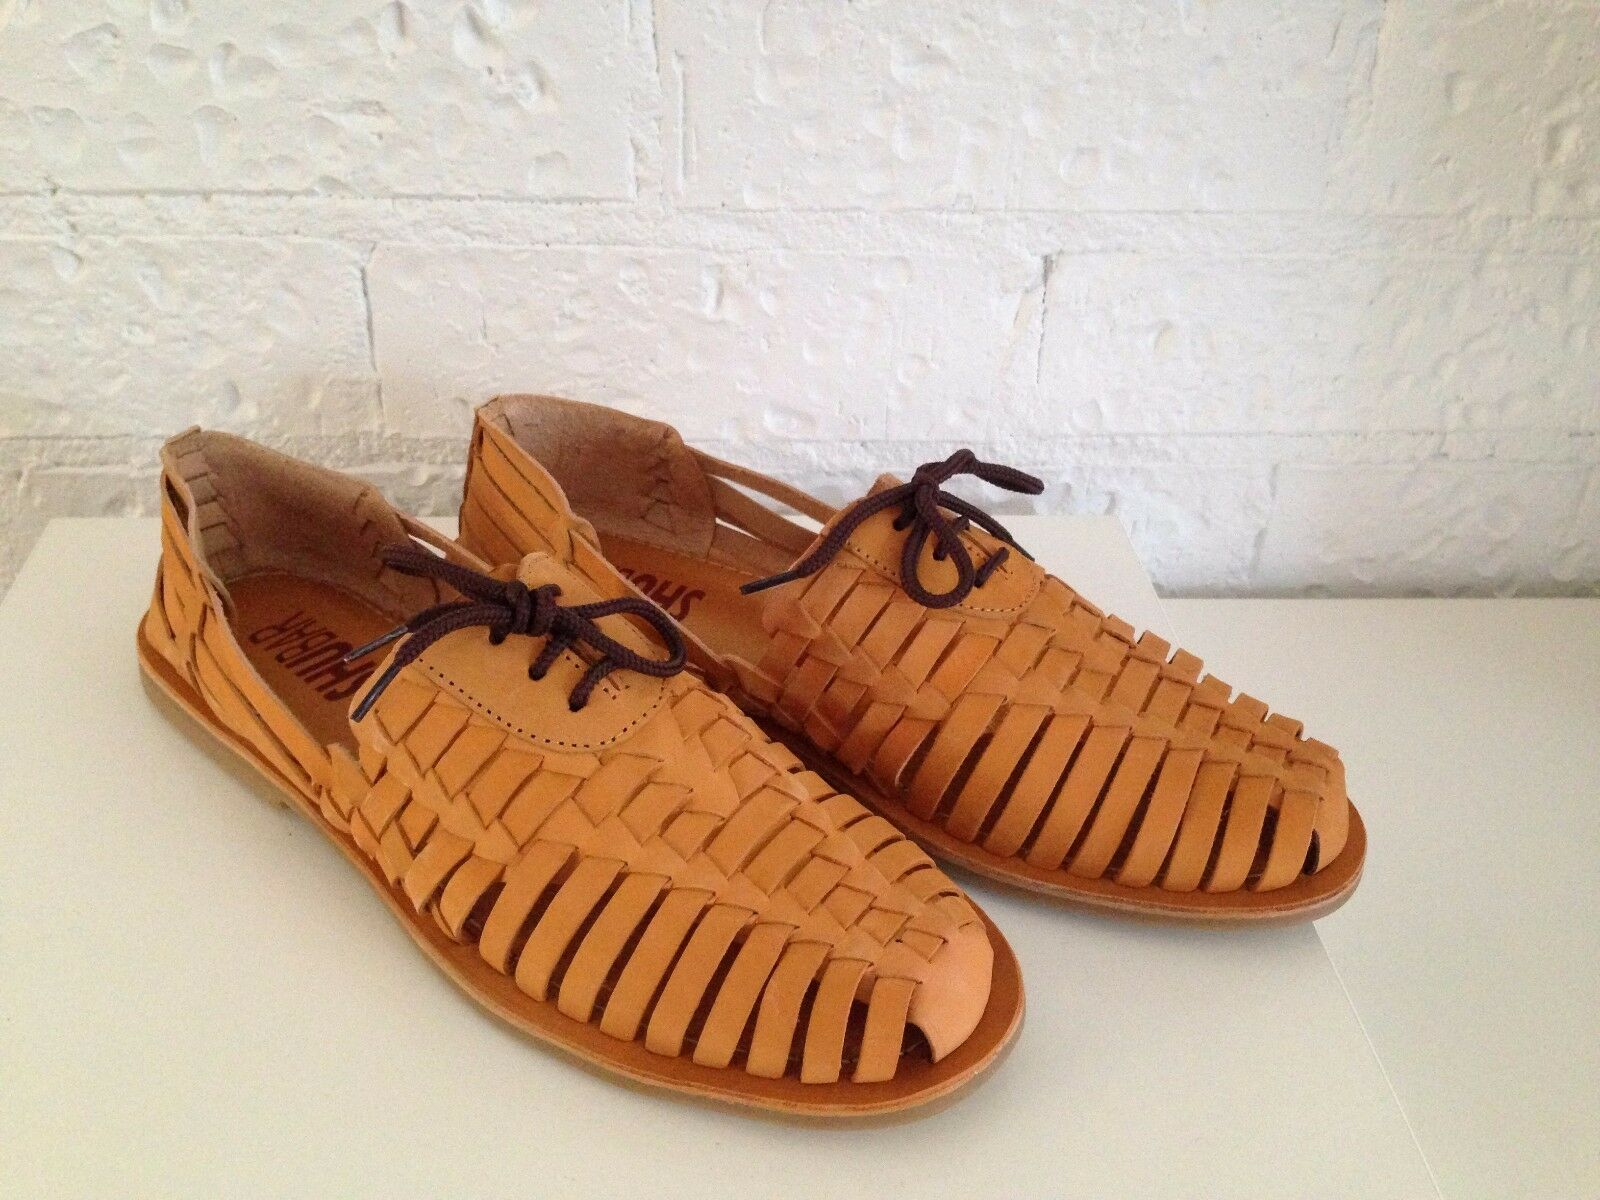 Men's Summer Flat Lace Up Light Tan Leather Woven Braided  Casual shoes 42-44